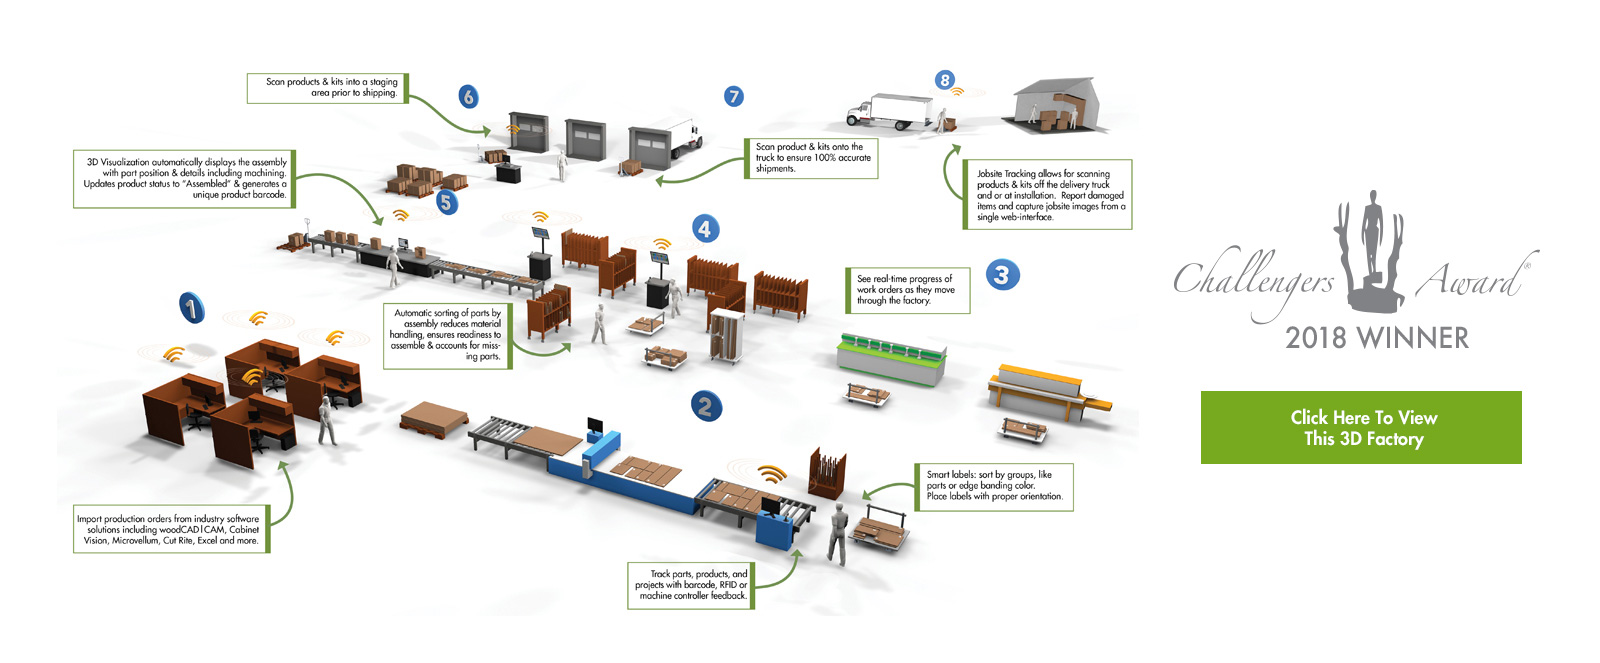 Production Coach Factory Process Map